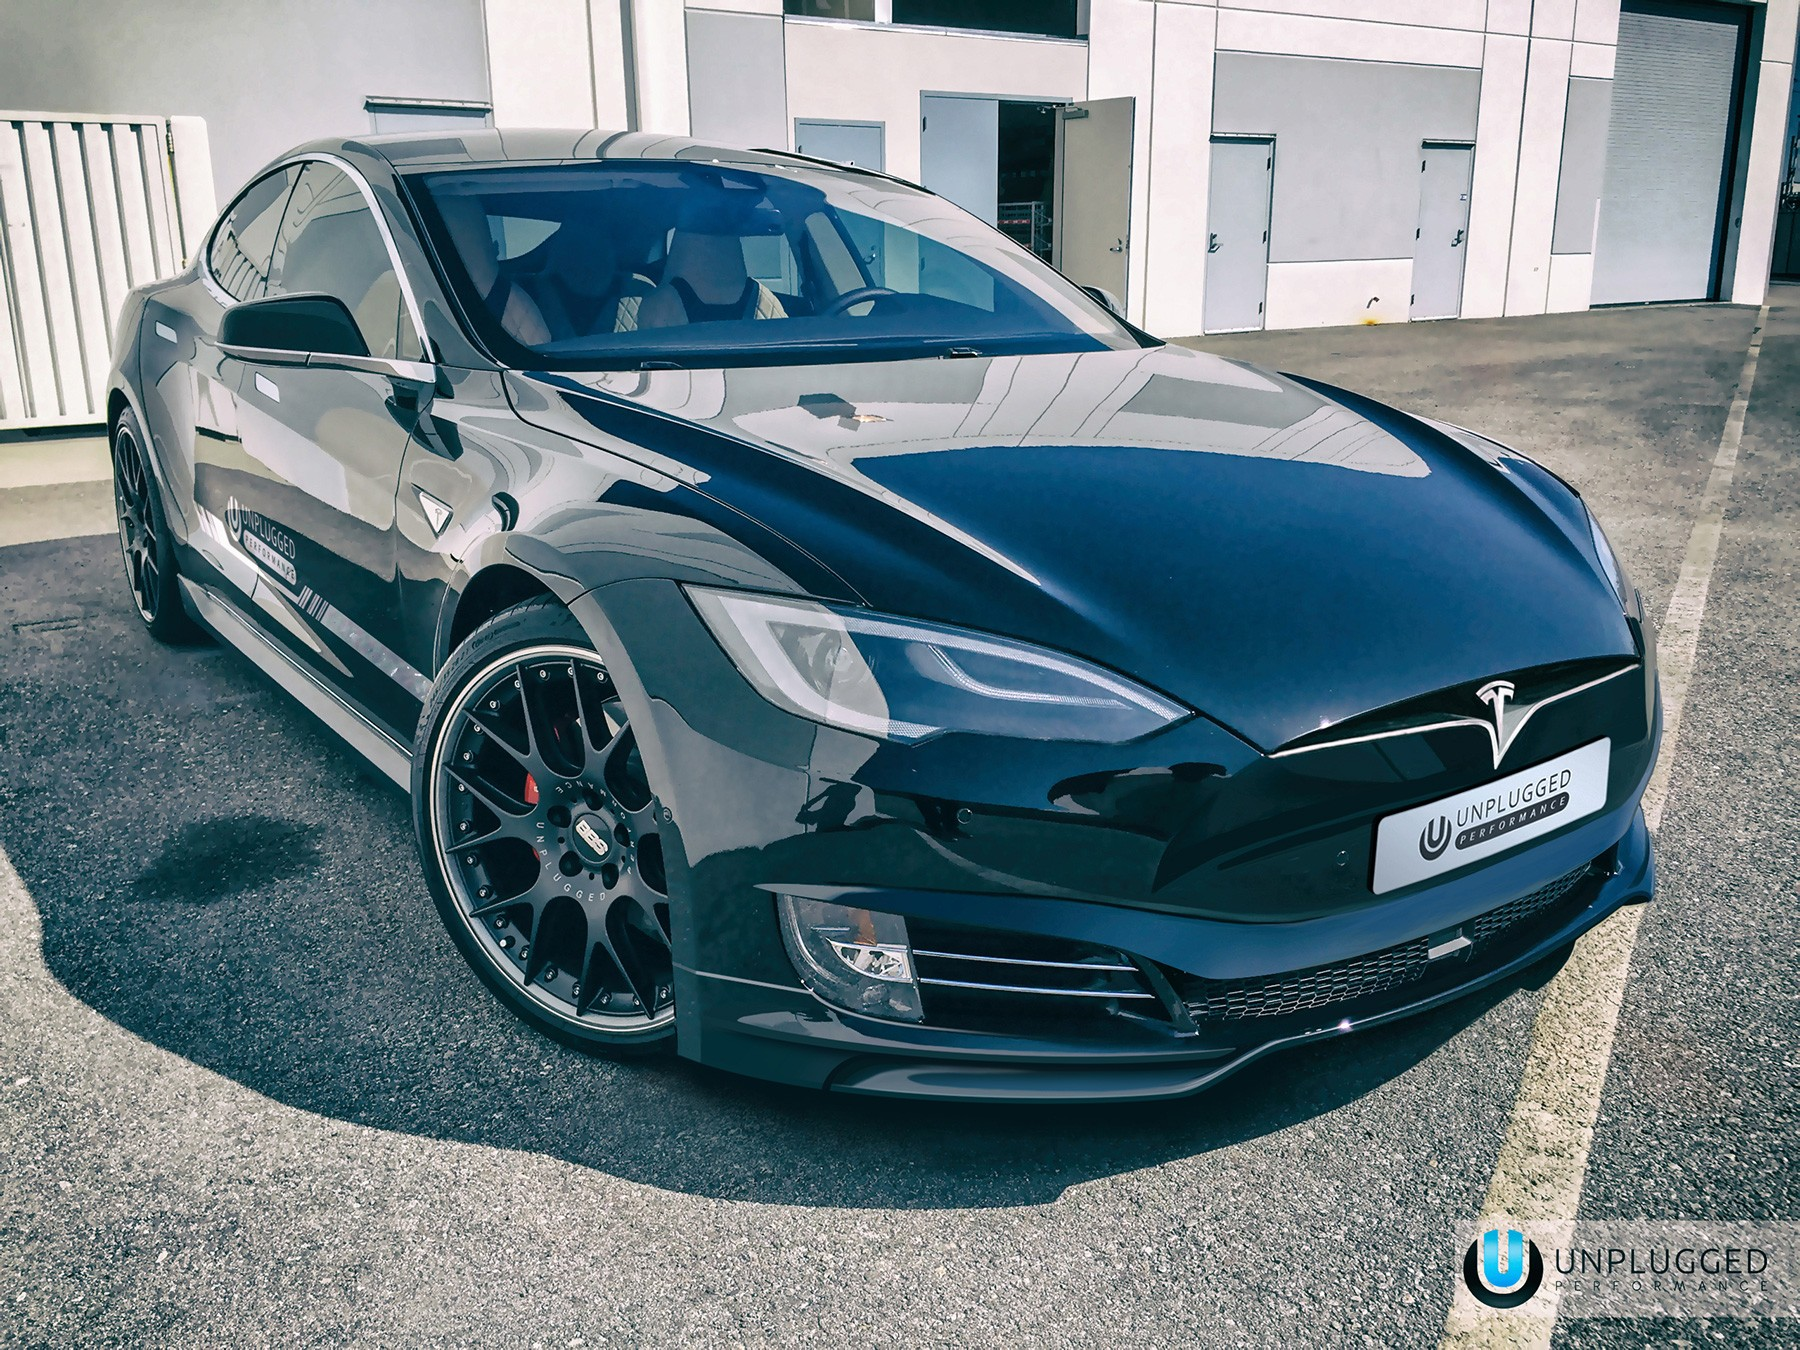 Tuning Company Proposes New Face For Old Tesla Model S - autoevolution